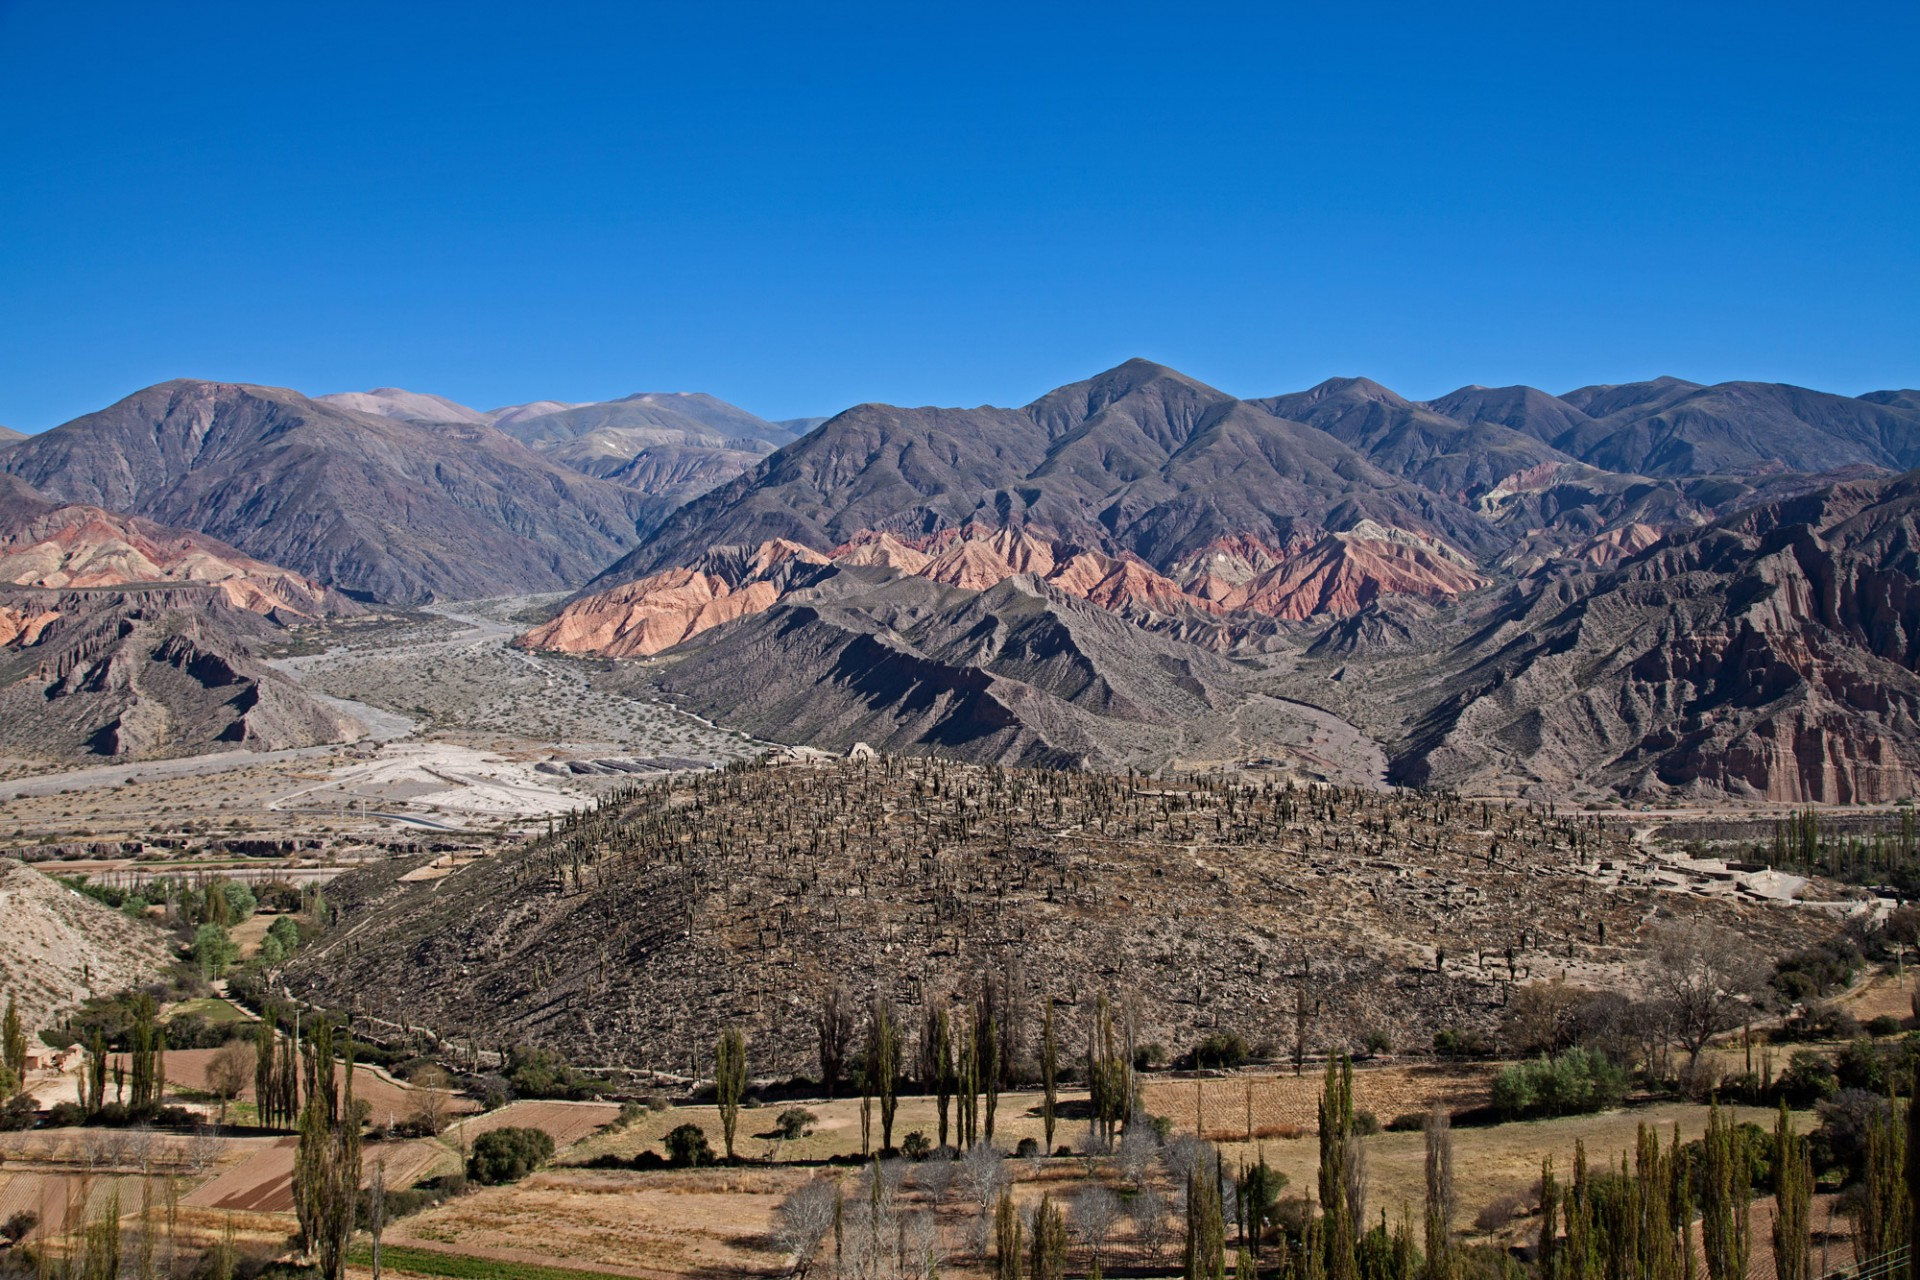 El mundo andino – The world in the Andes/Argentina